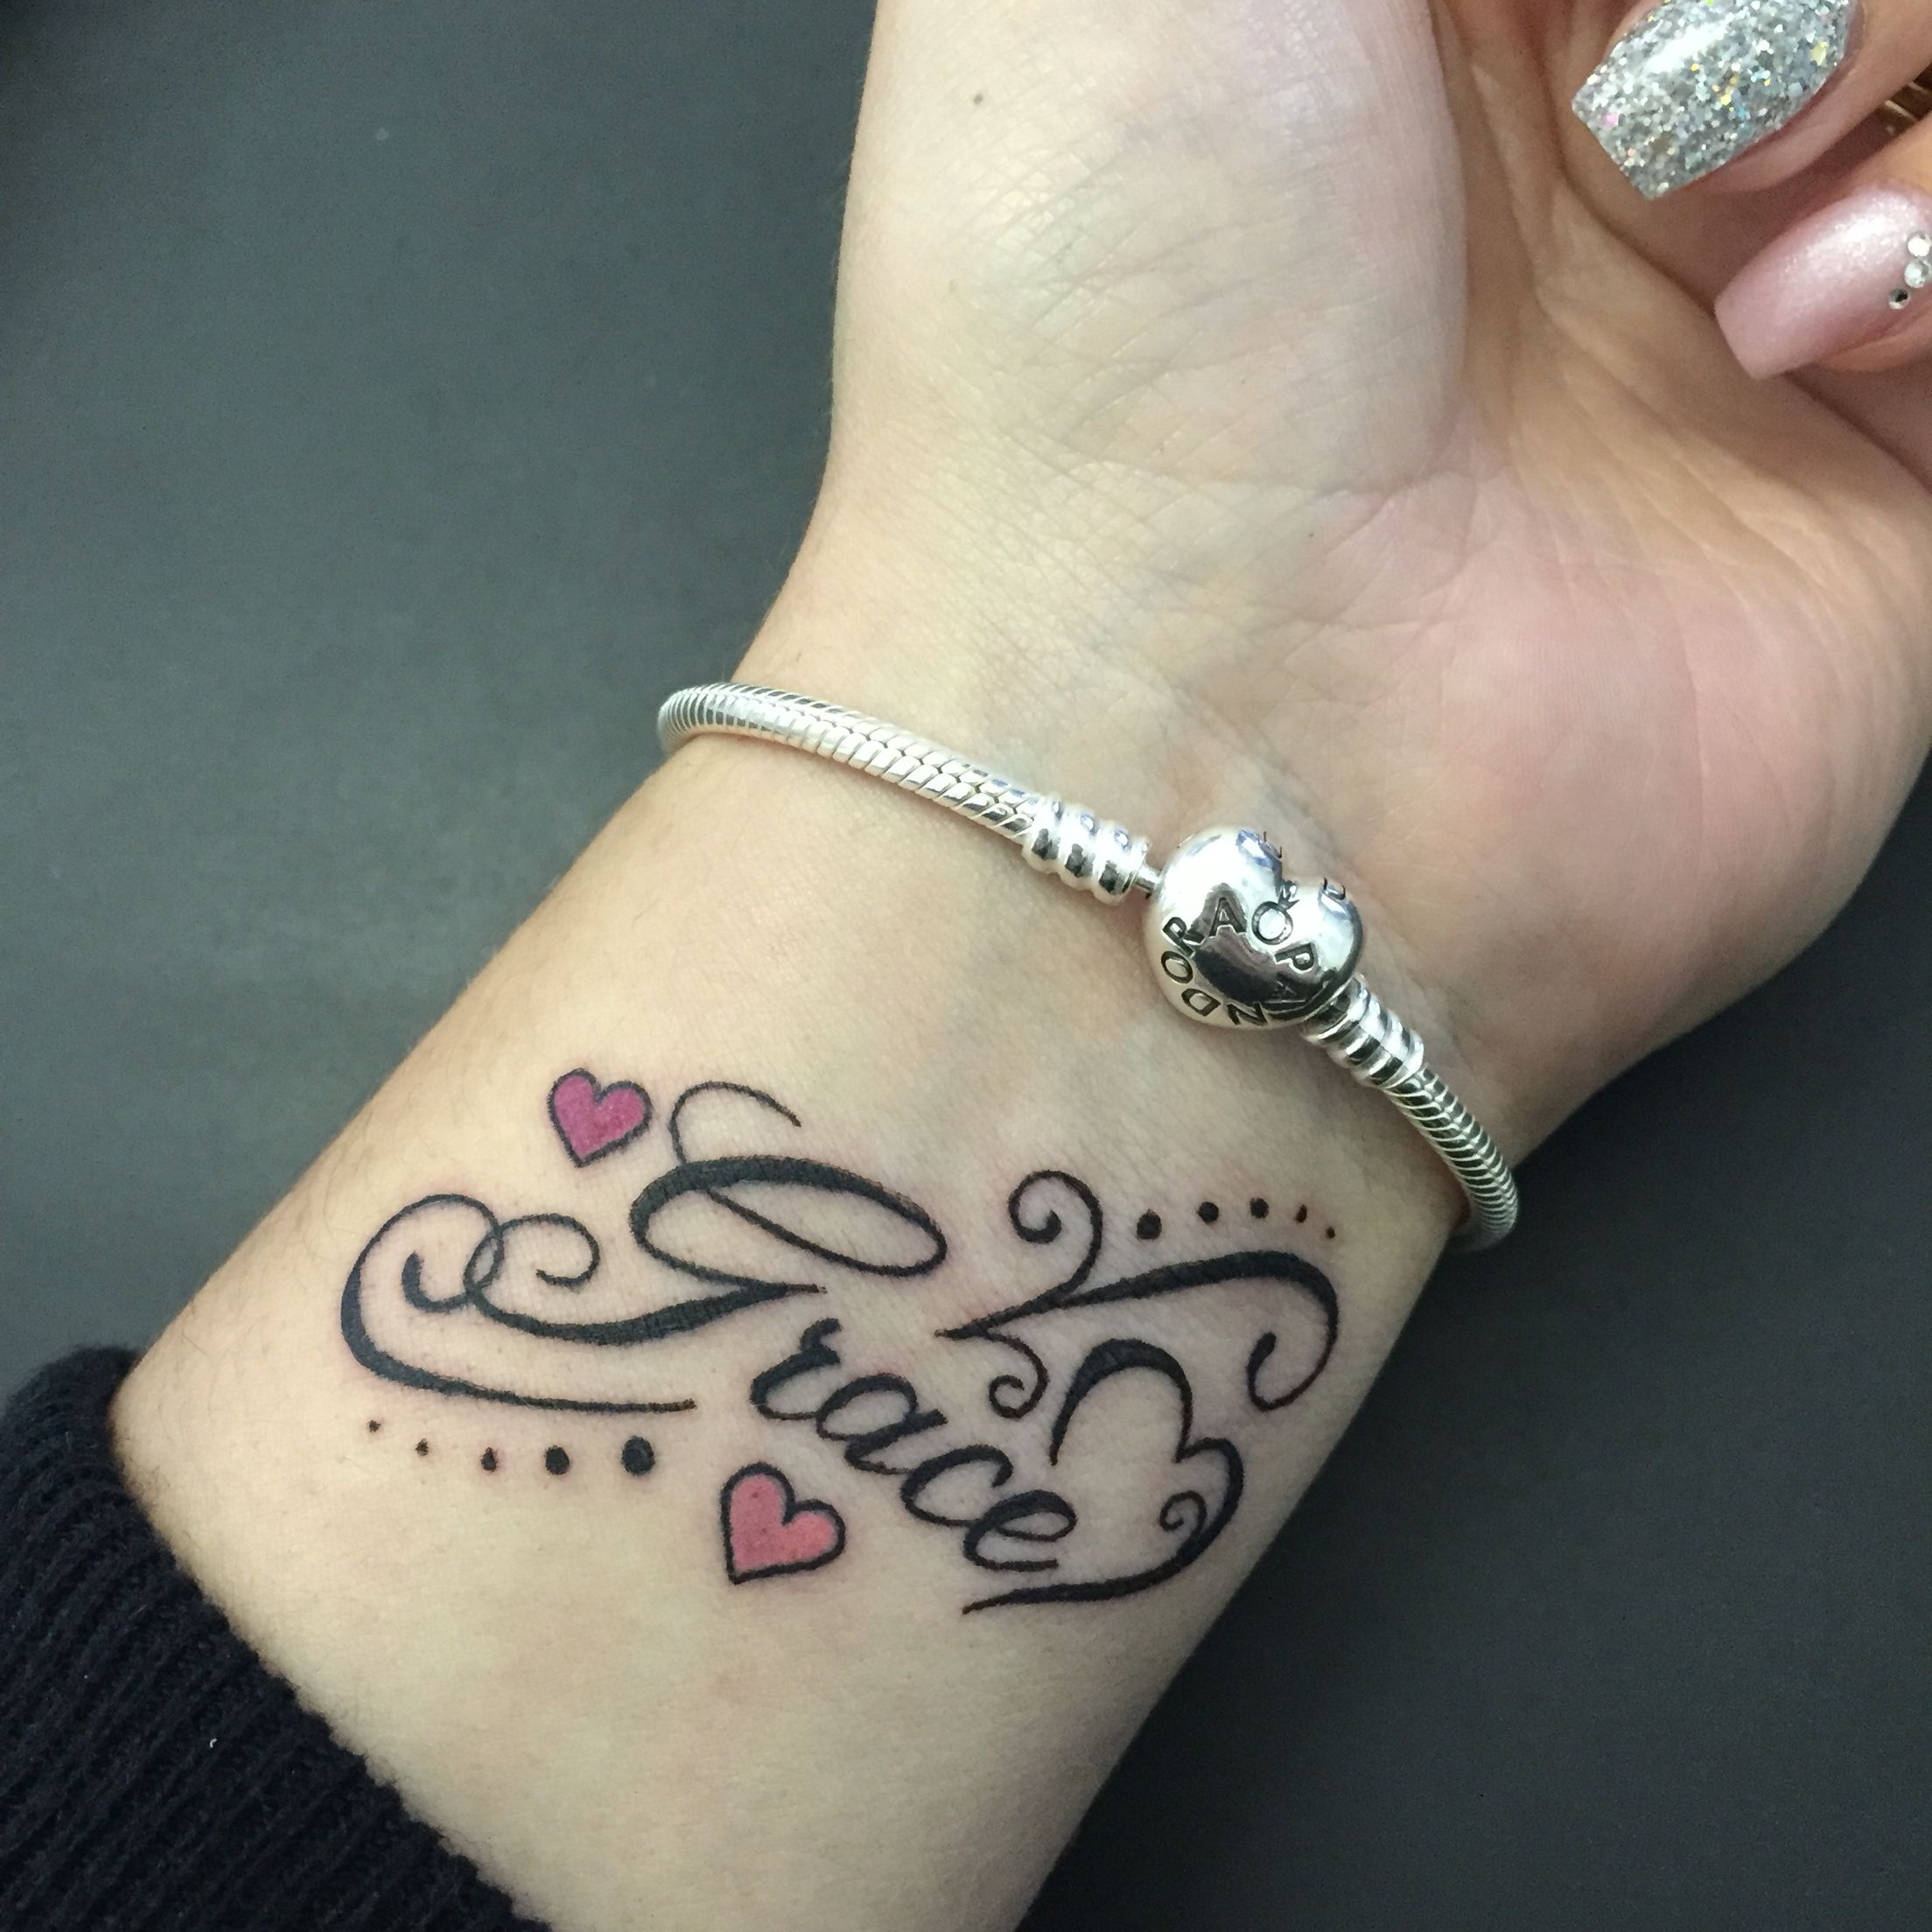 Pin by BeautyBySherrie on TATTOO IDEAS Wrist tattoos for